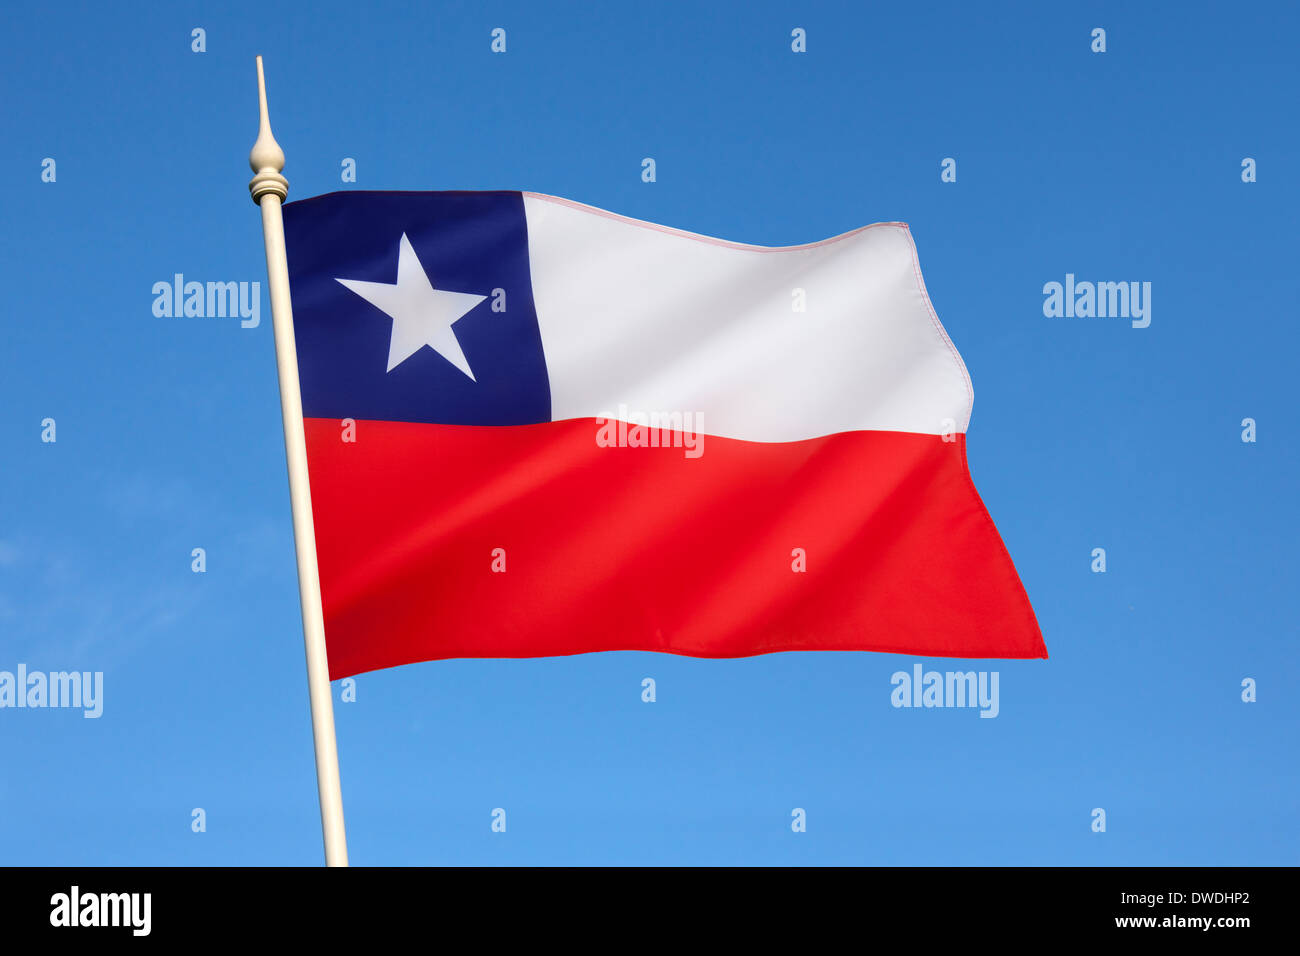 flag flags chile stock photos flag flags chile stock images alamy